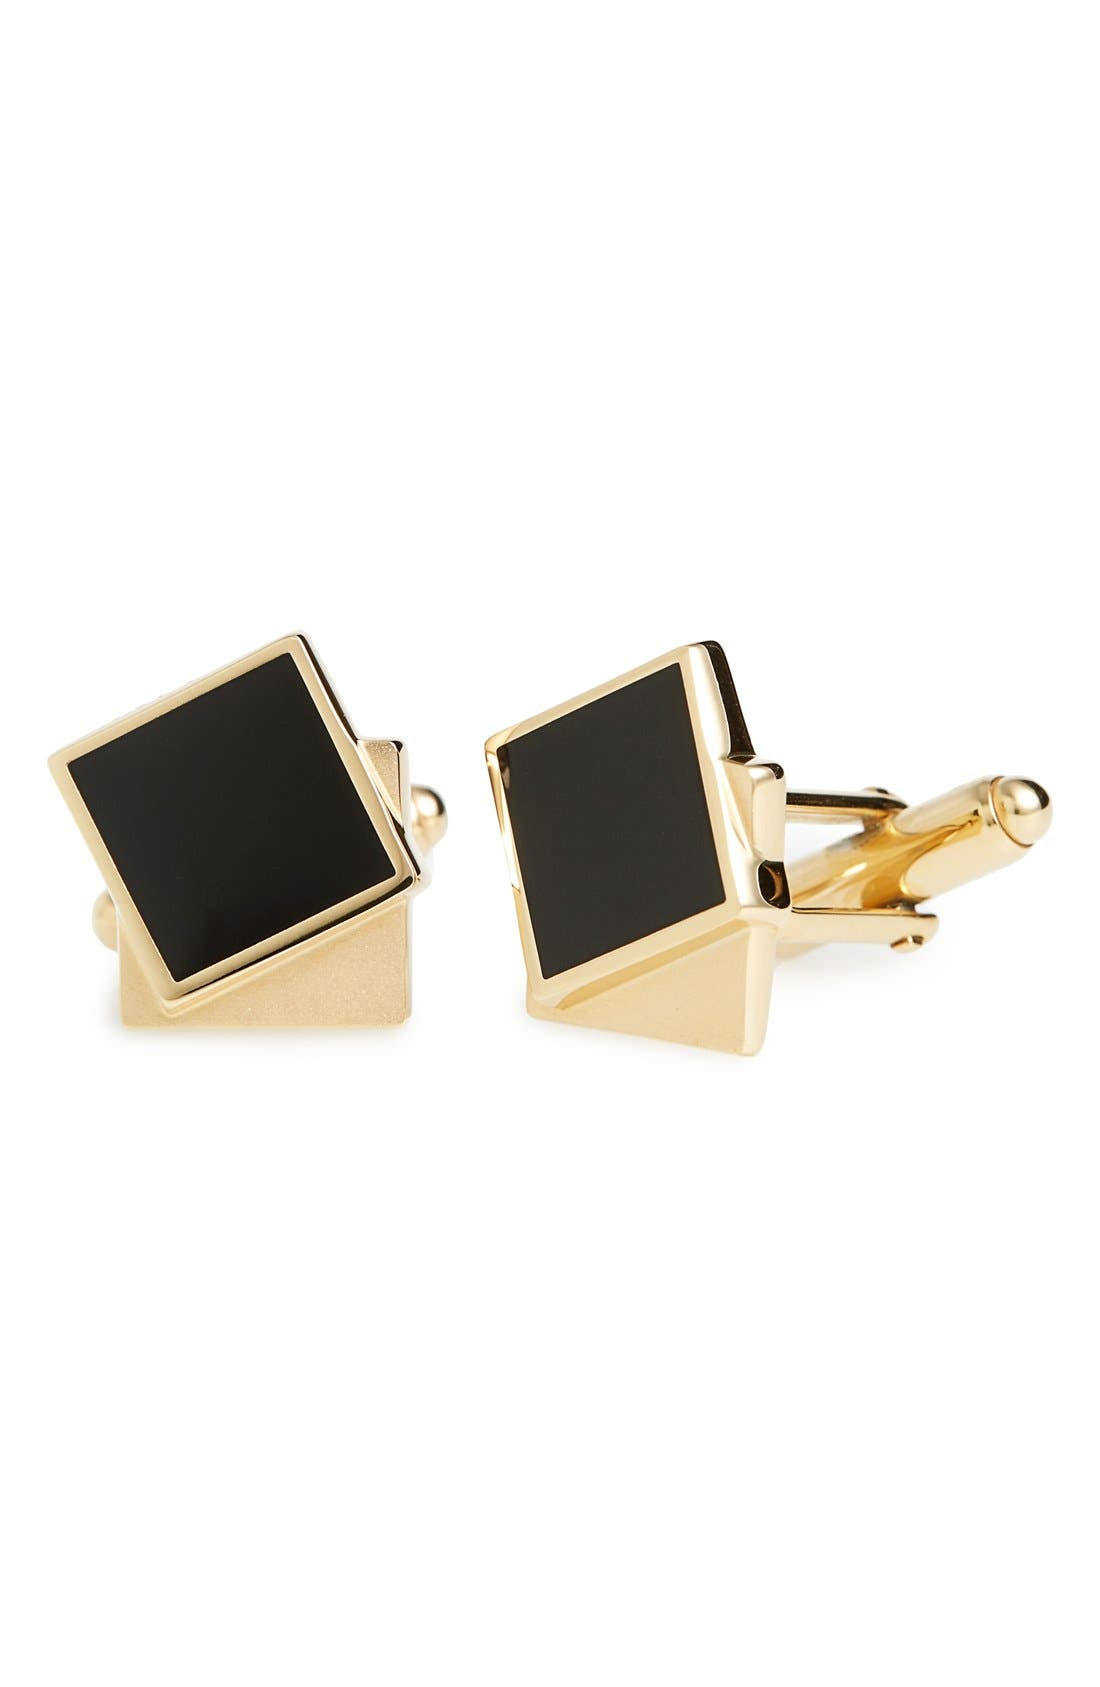 Alternate Image 1 Selected - Lanvin Enameled Double Square Cuff Links